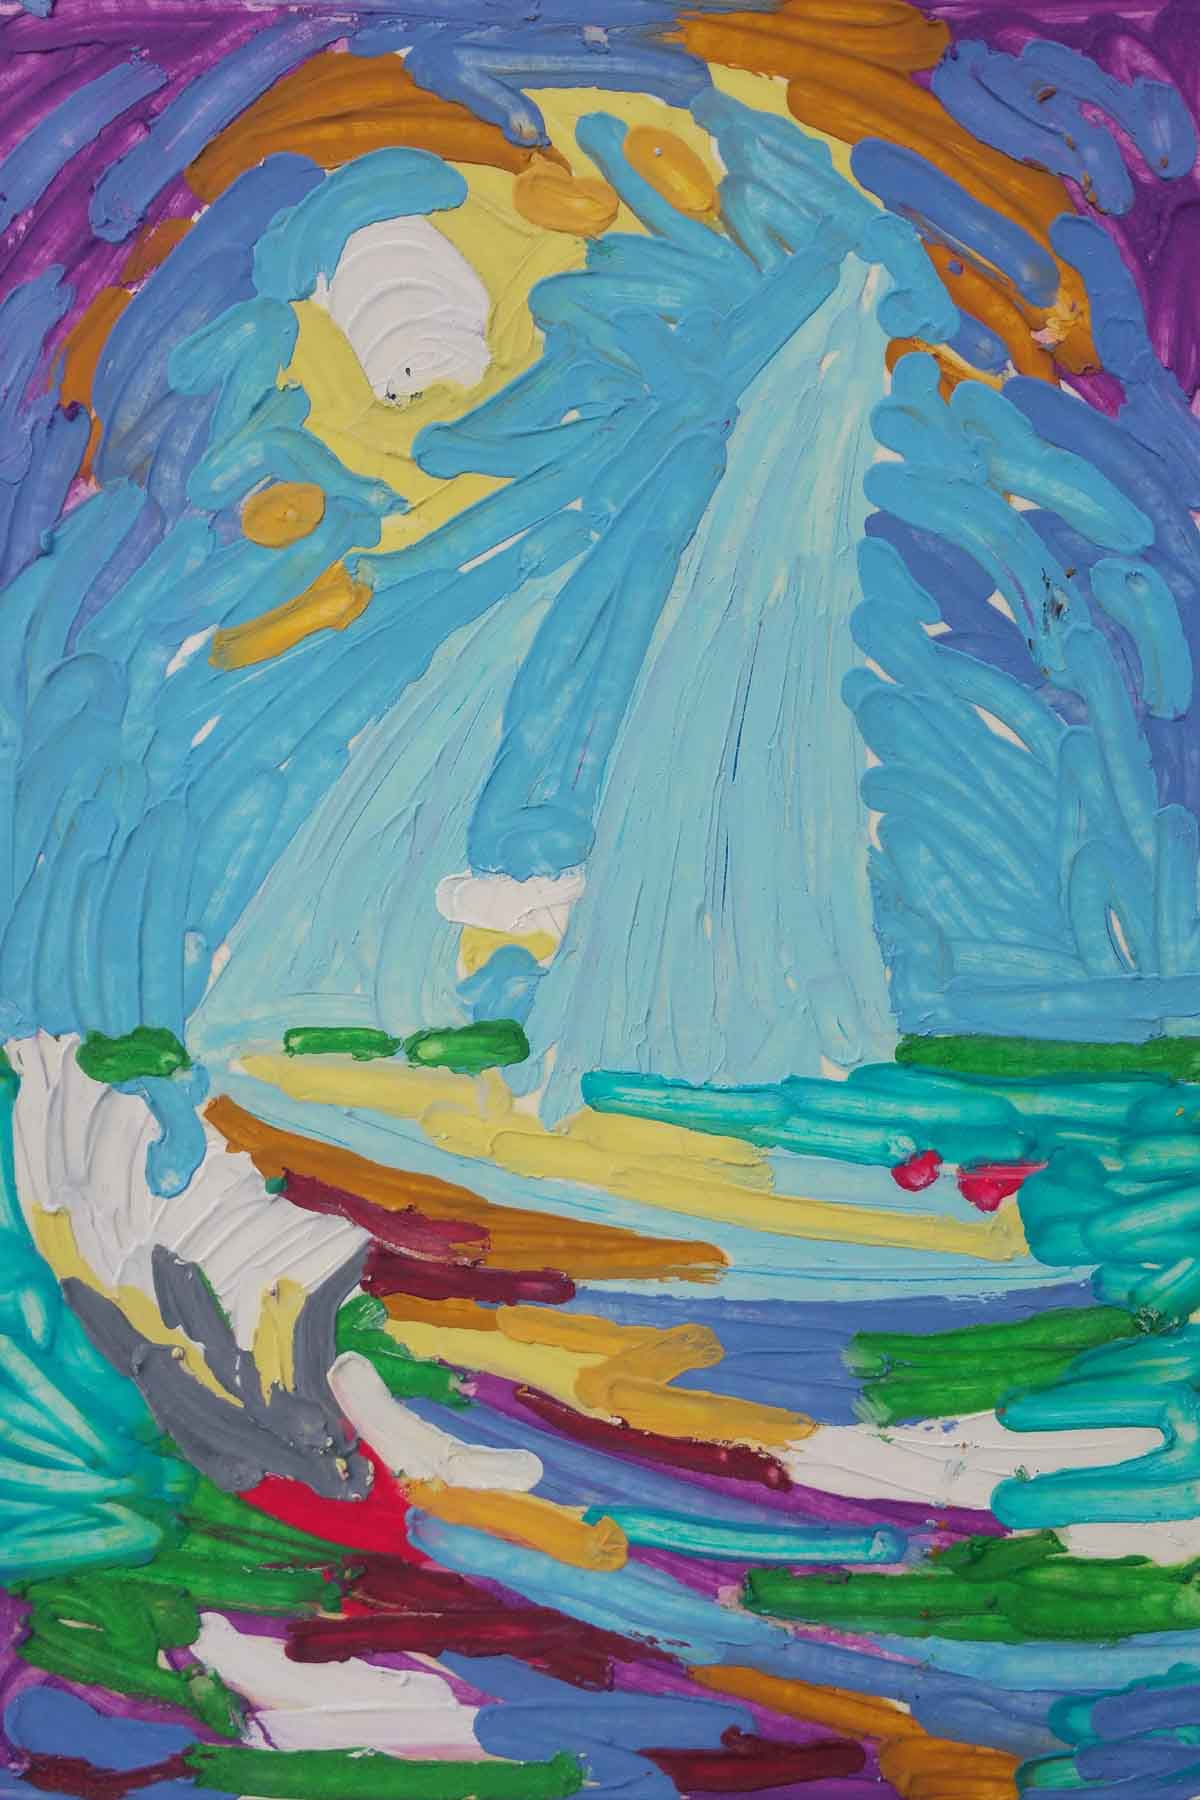 Oil pastel melted on paper of the ship emma lou by tom lohre